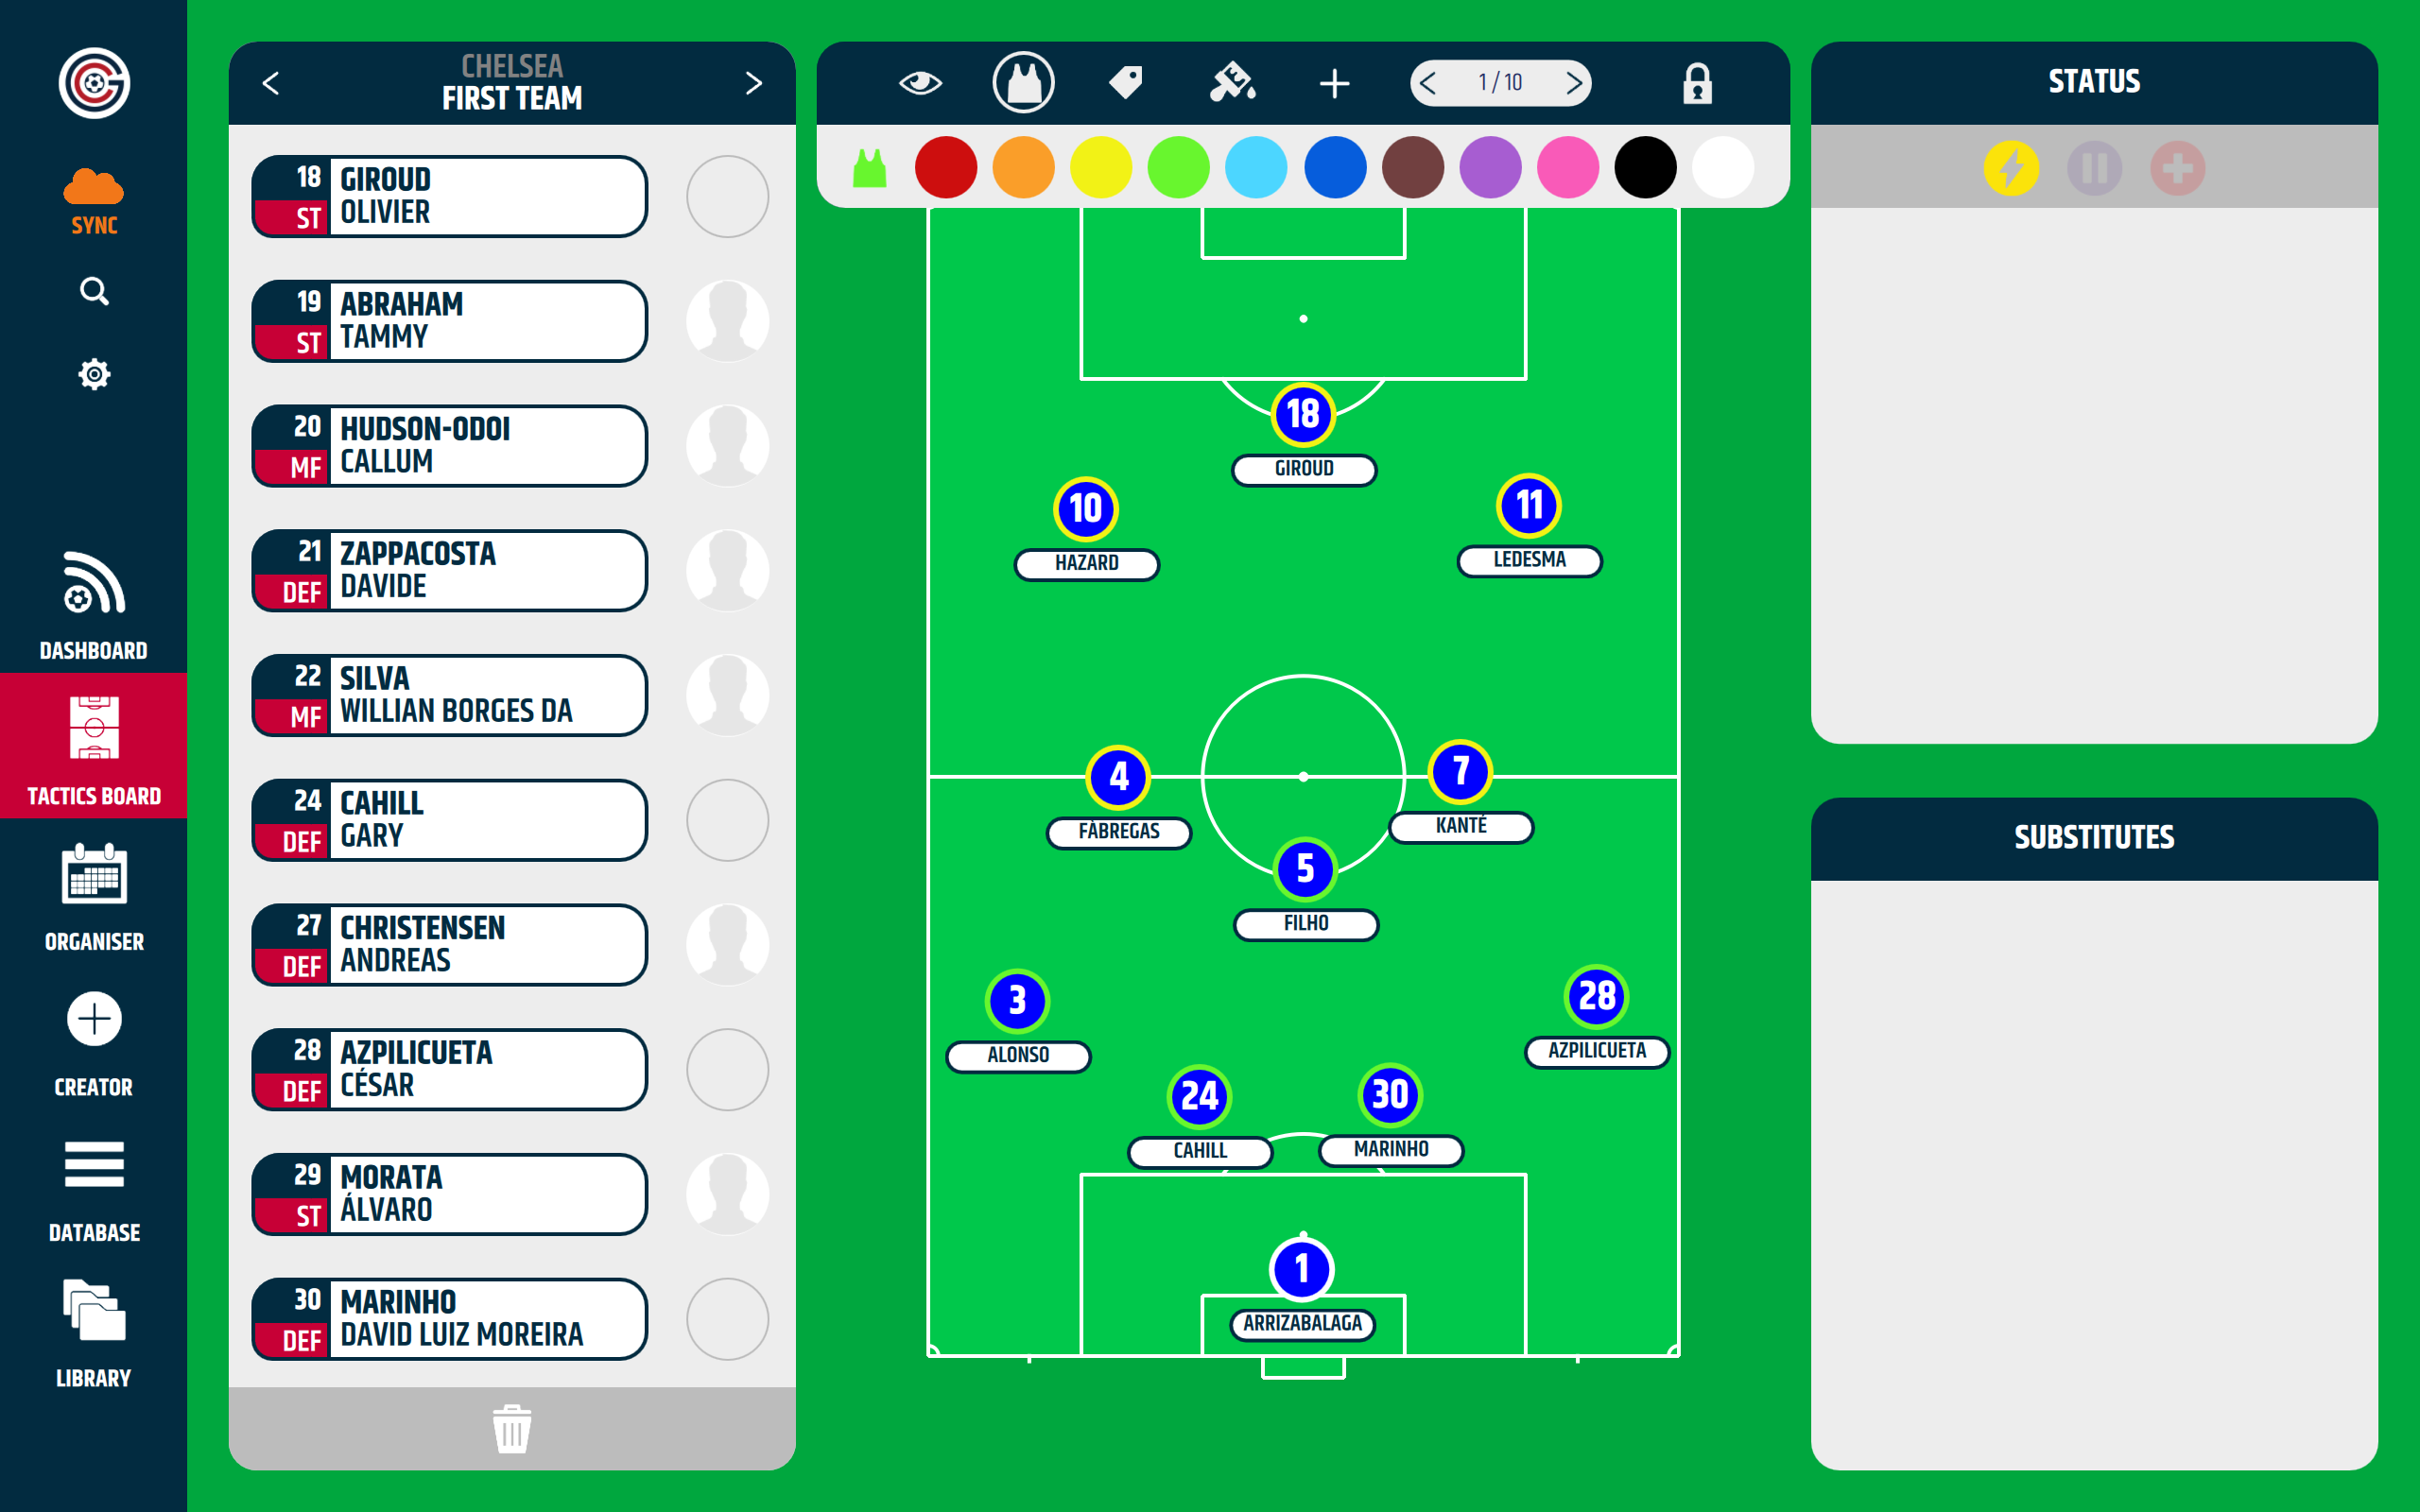 Tactics_board_-_Add_bibs_to_the_players.png